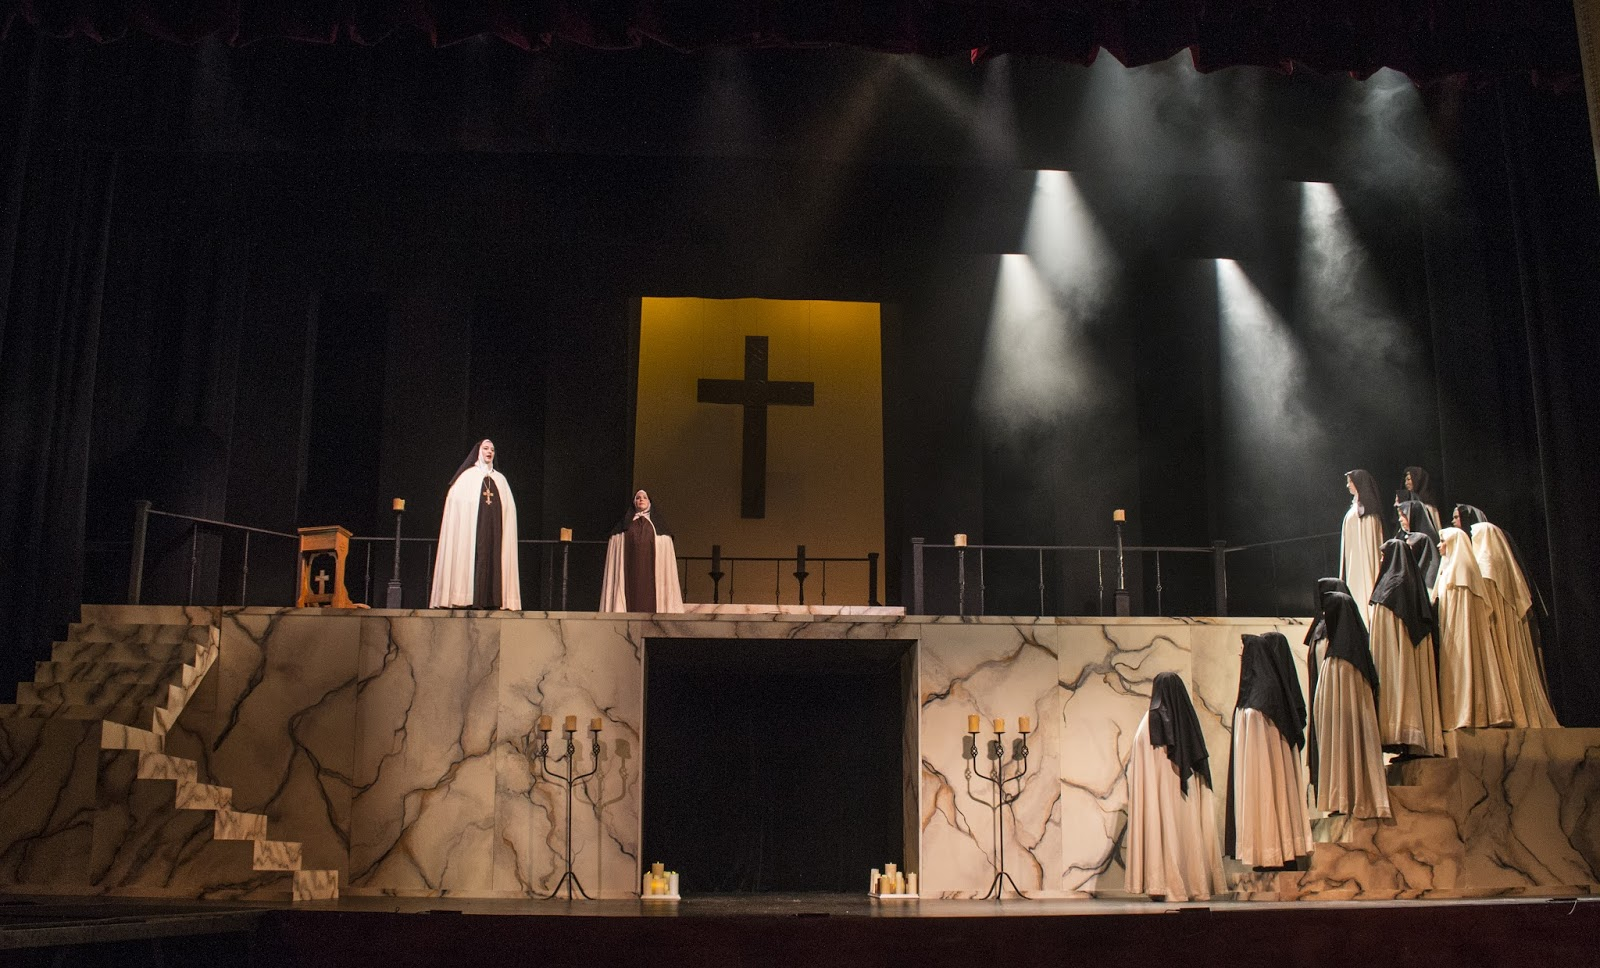 IN PERFORMANCE: a scene from UNCG Opera Theatre's production of Francis Poulenc's DIALOGUES OF THE CARMELITES, April 2016 [Photo by Rachel Anthony, © by rayphotographyco.com]